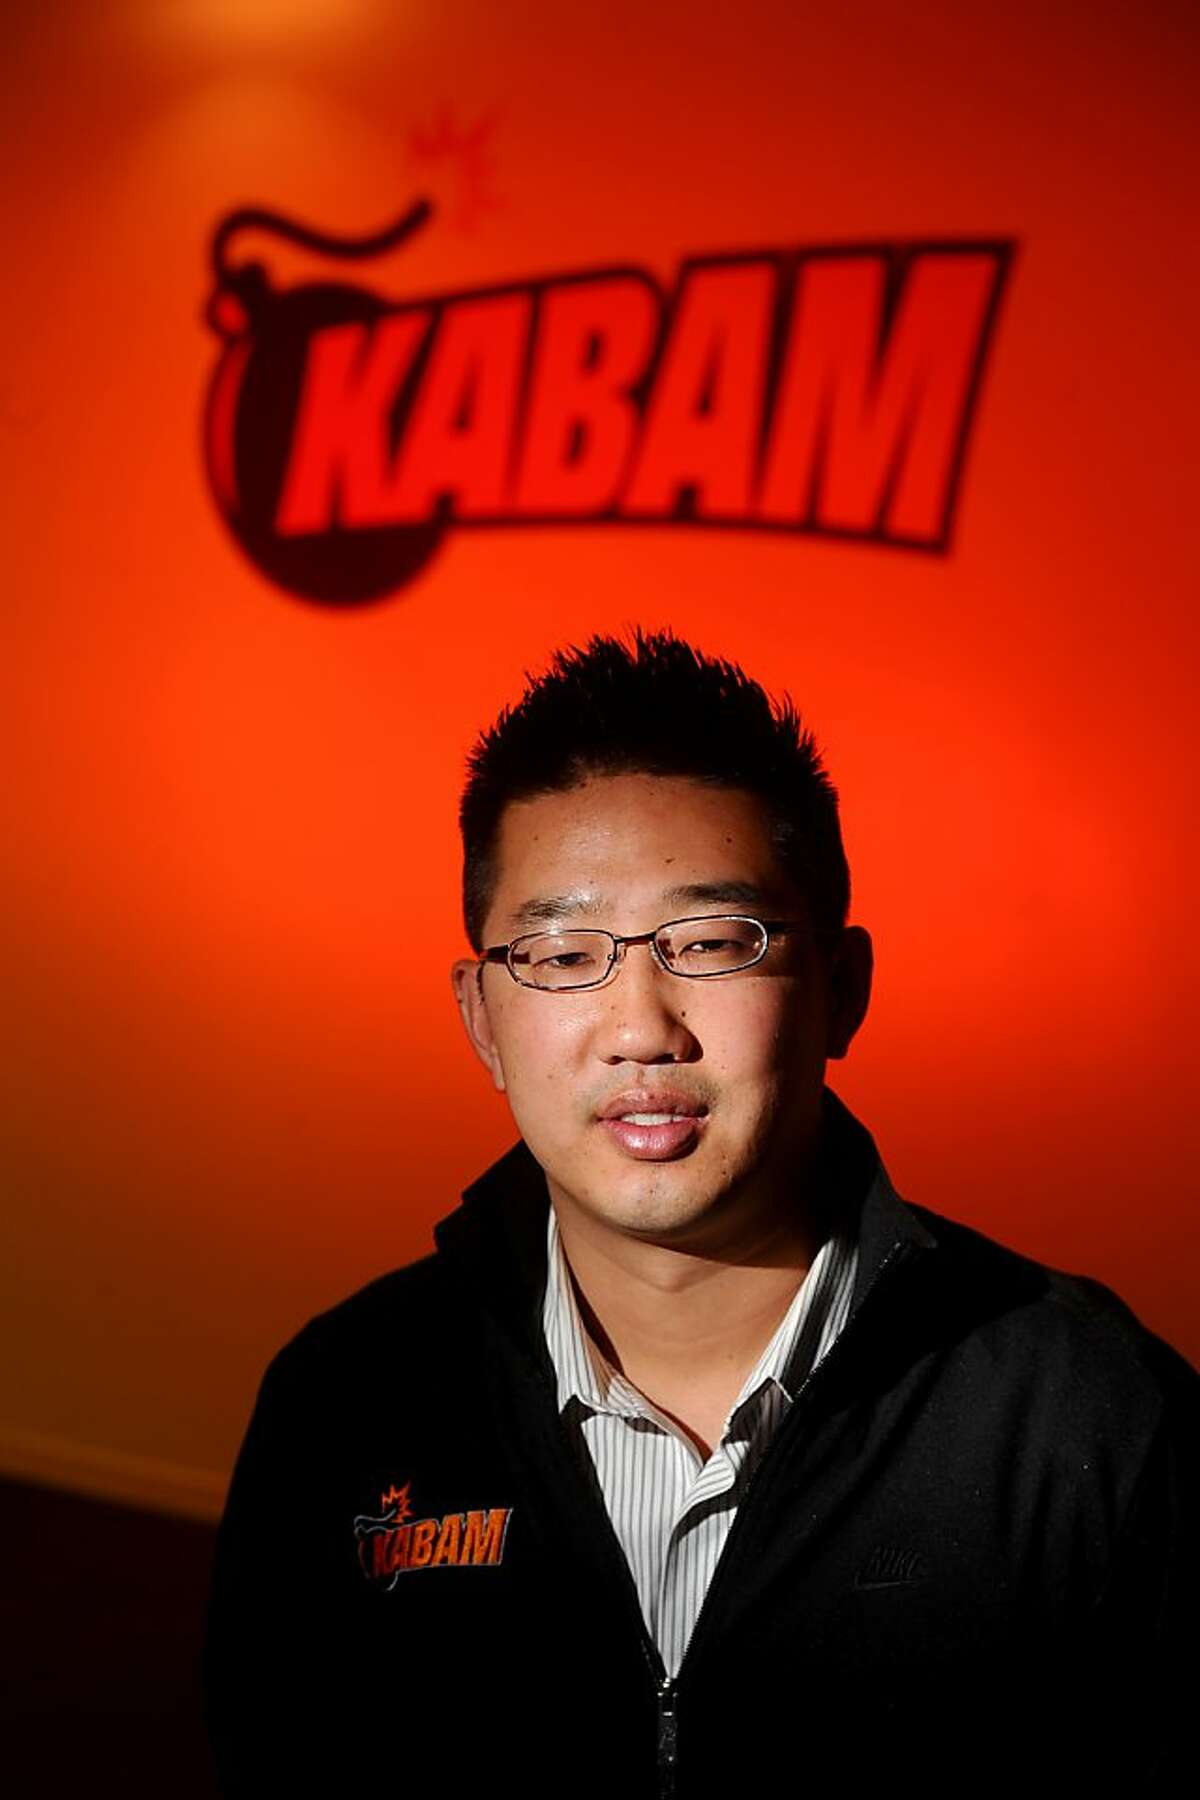 Kevin Chou, chief executive officer of Kabam, poses at his company's offices in Redwood City, California, U.S., on Tuesday, May 24, 2011. Photographer: Noah Berger/Bloomberg News.